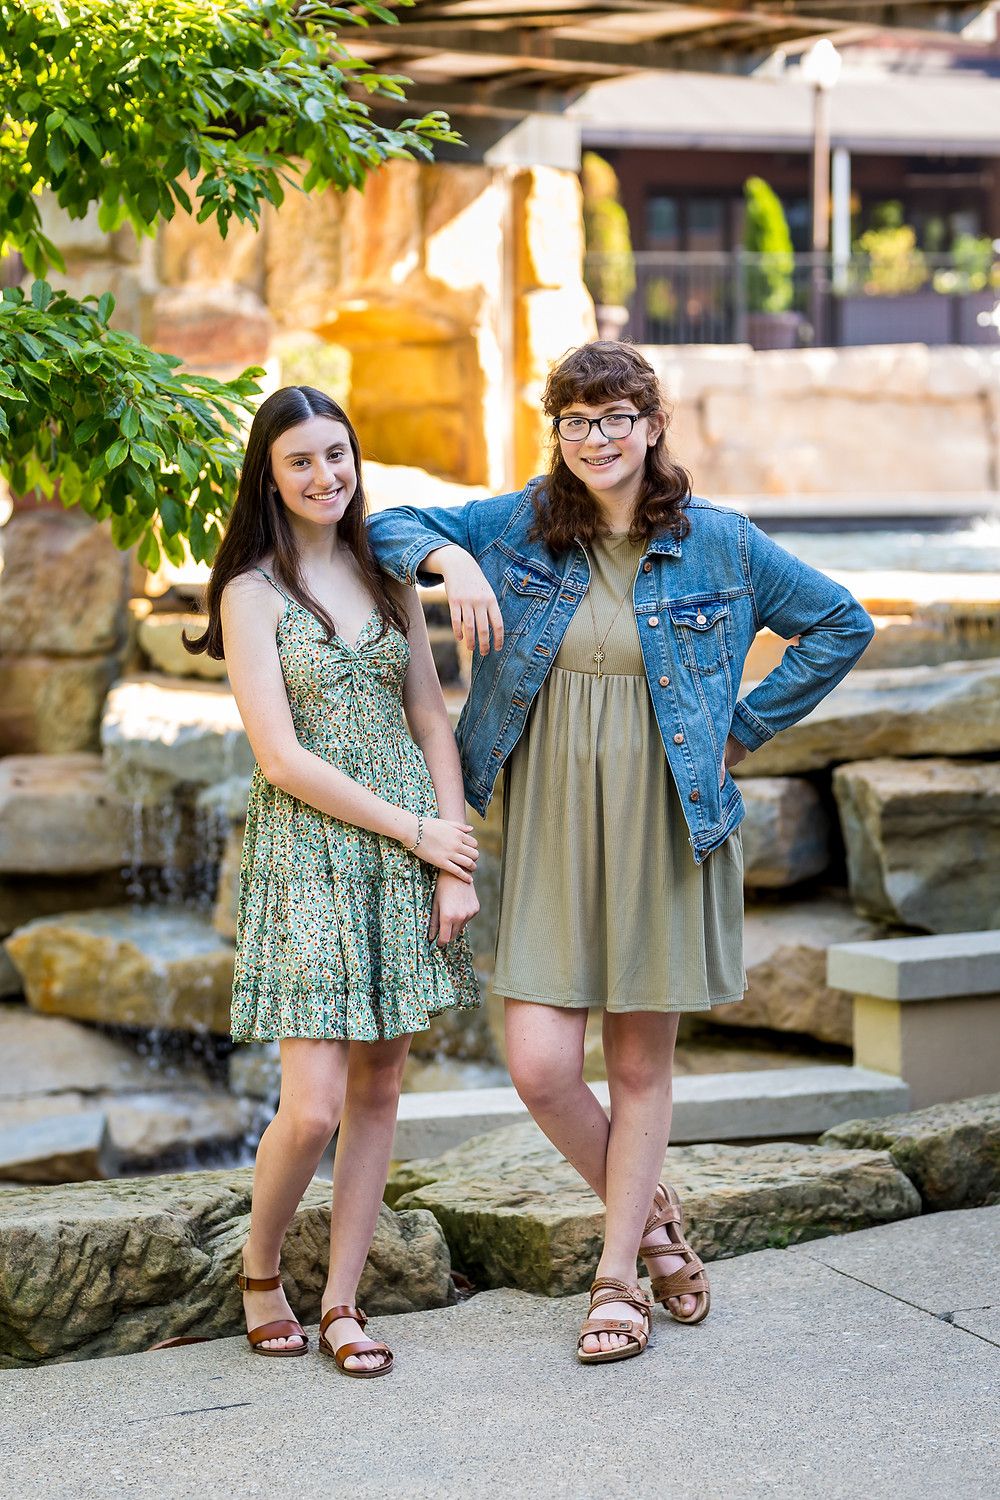 Teen sisters standing and leaning on each other both wearing green dresses and one in a denim jacket as photographed by Westerville Senior Photography in Gahanna, Ohio